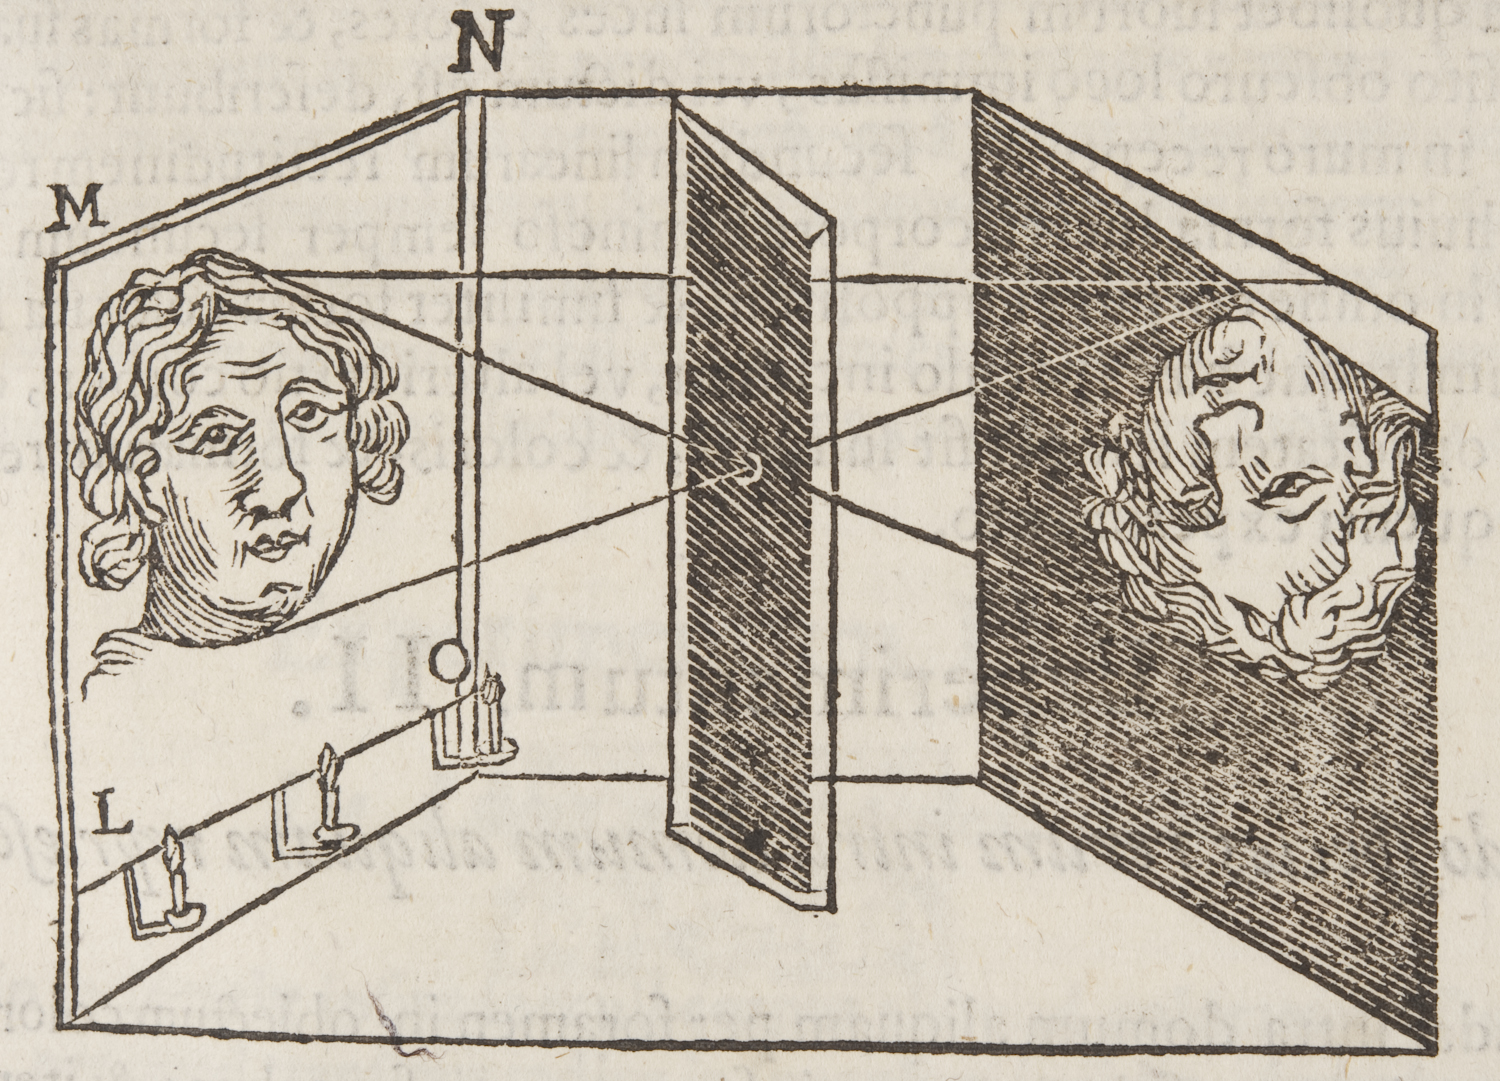 Who built the first camera obscura?